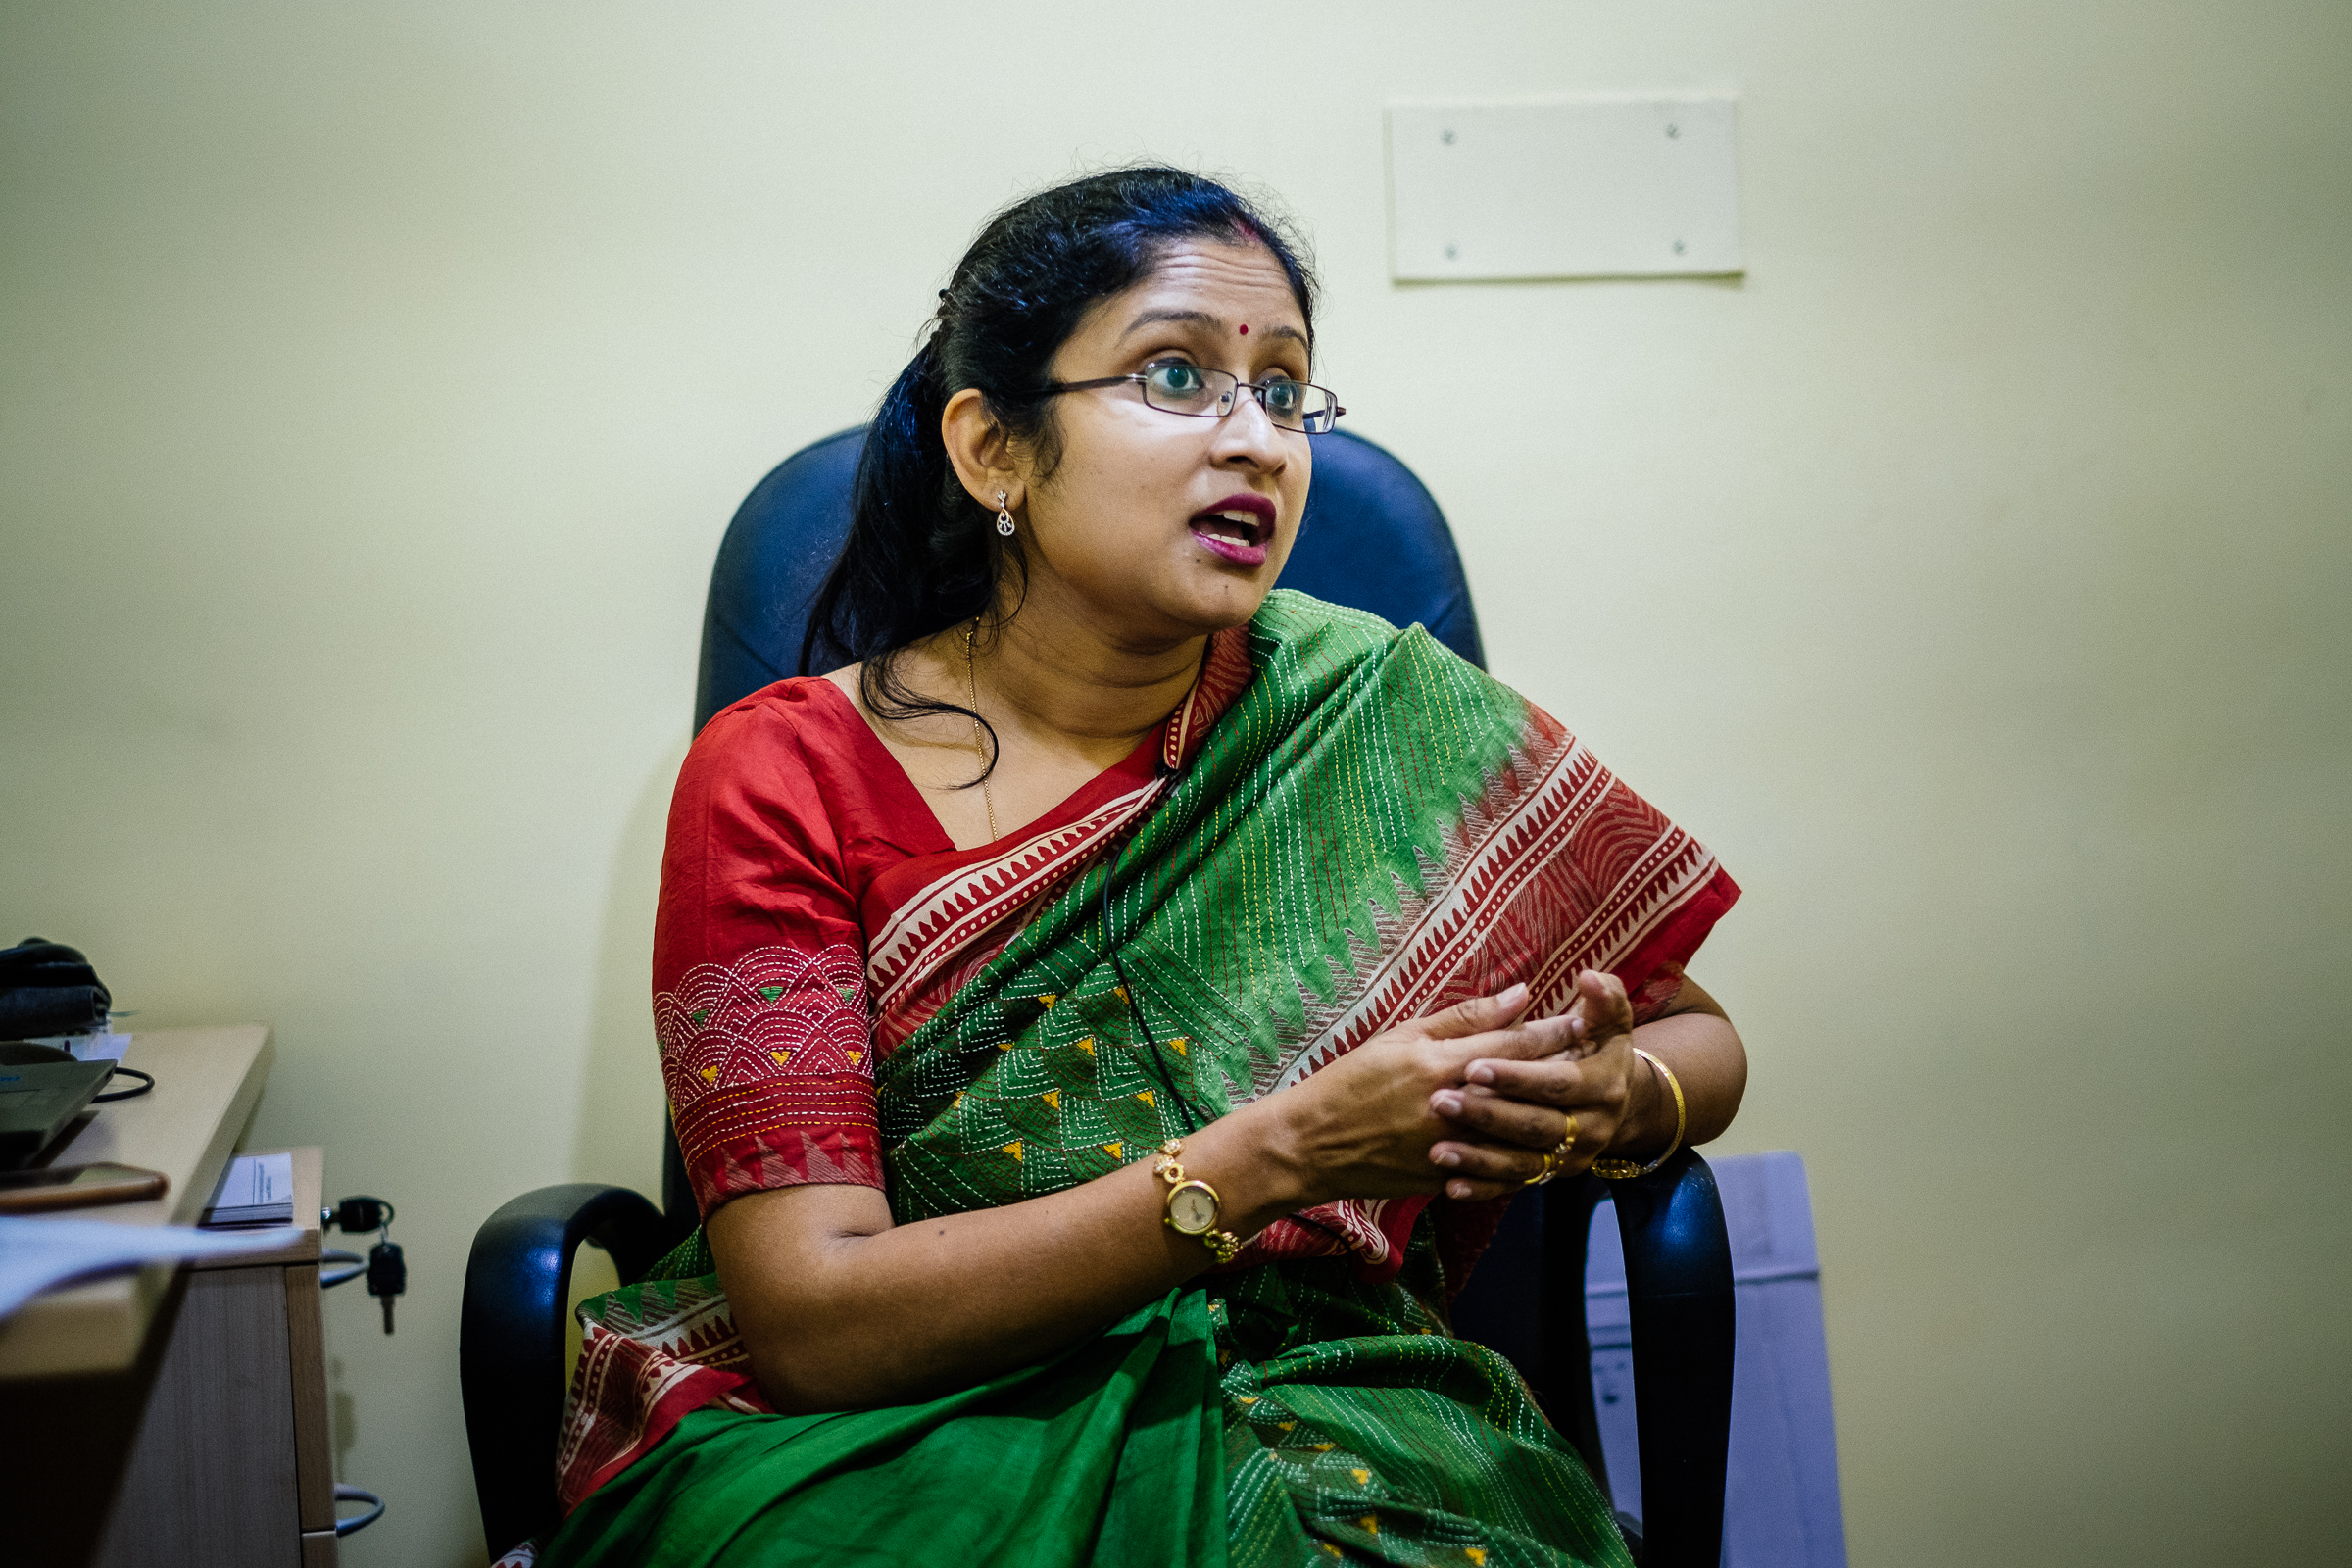 Highlights from our interview with Dr Roshan, a family physician running her own clinic in Bangalore.